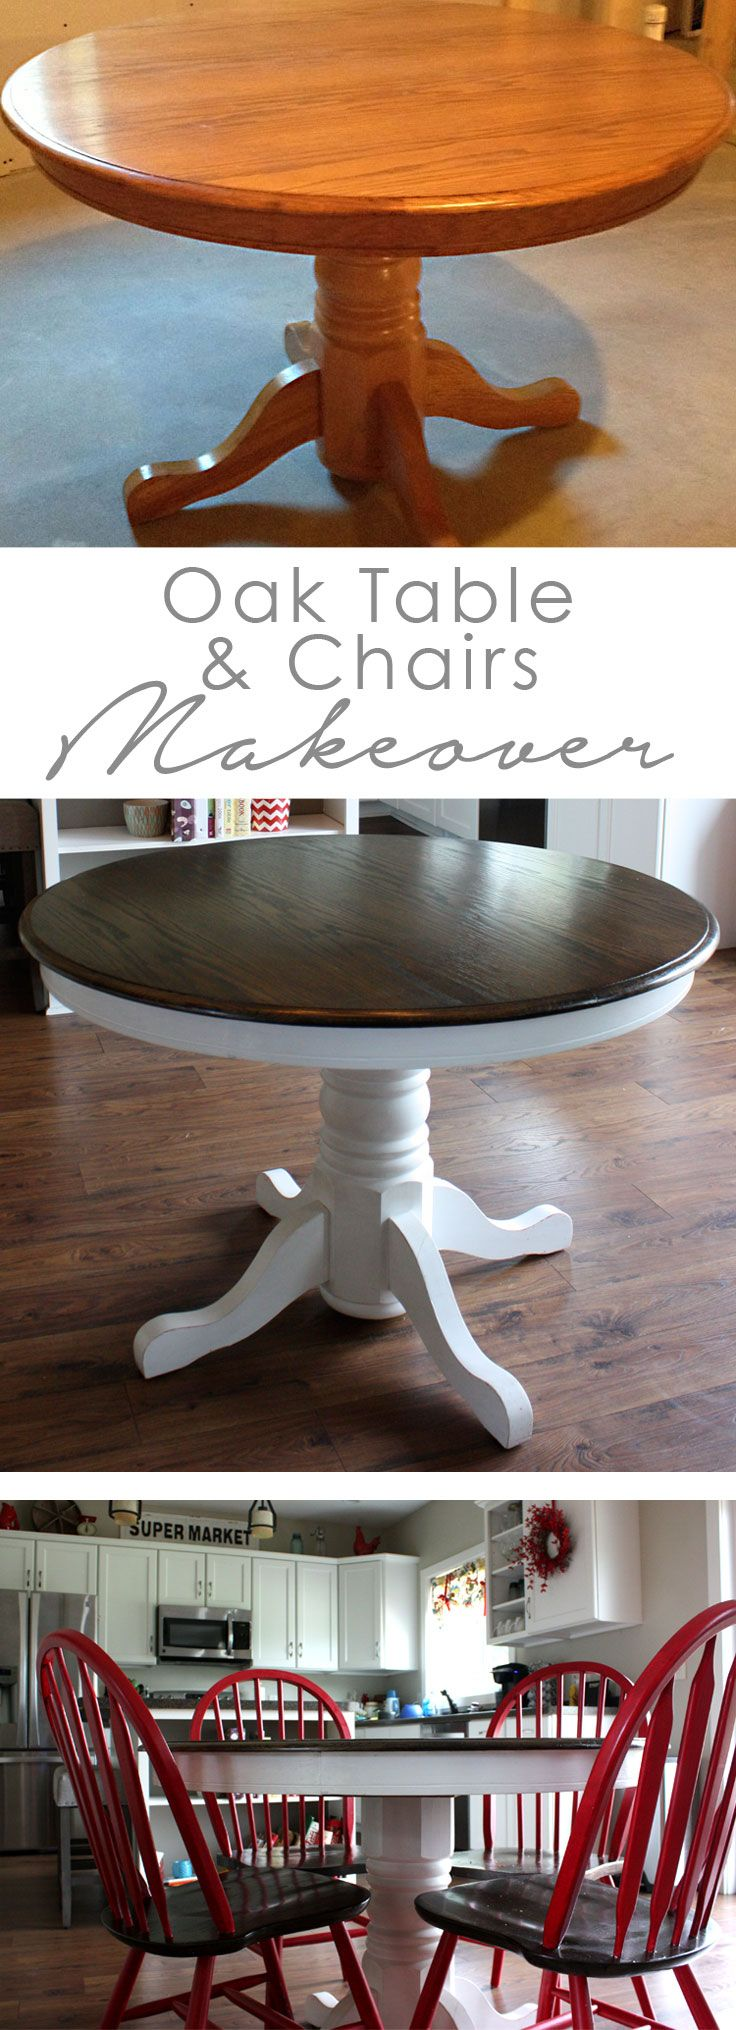 Oak Table Makeover Dining Table Makeover Kitchen Table Makeover